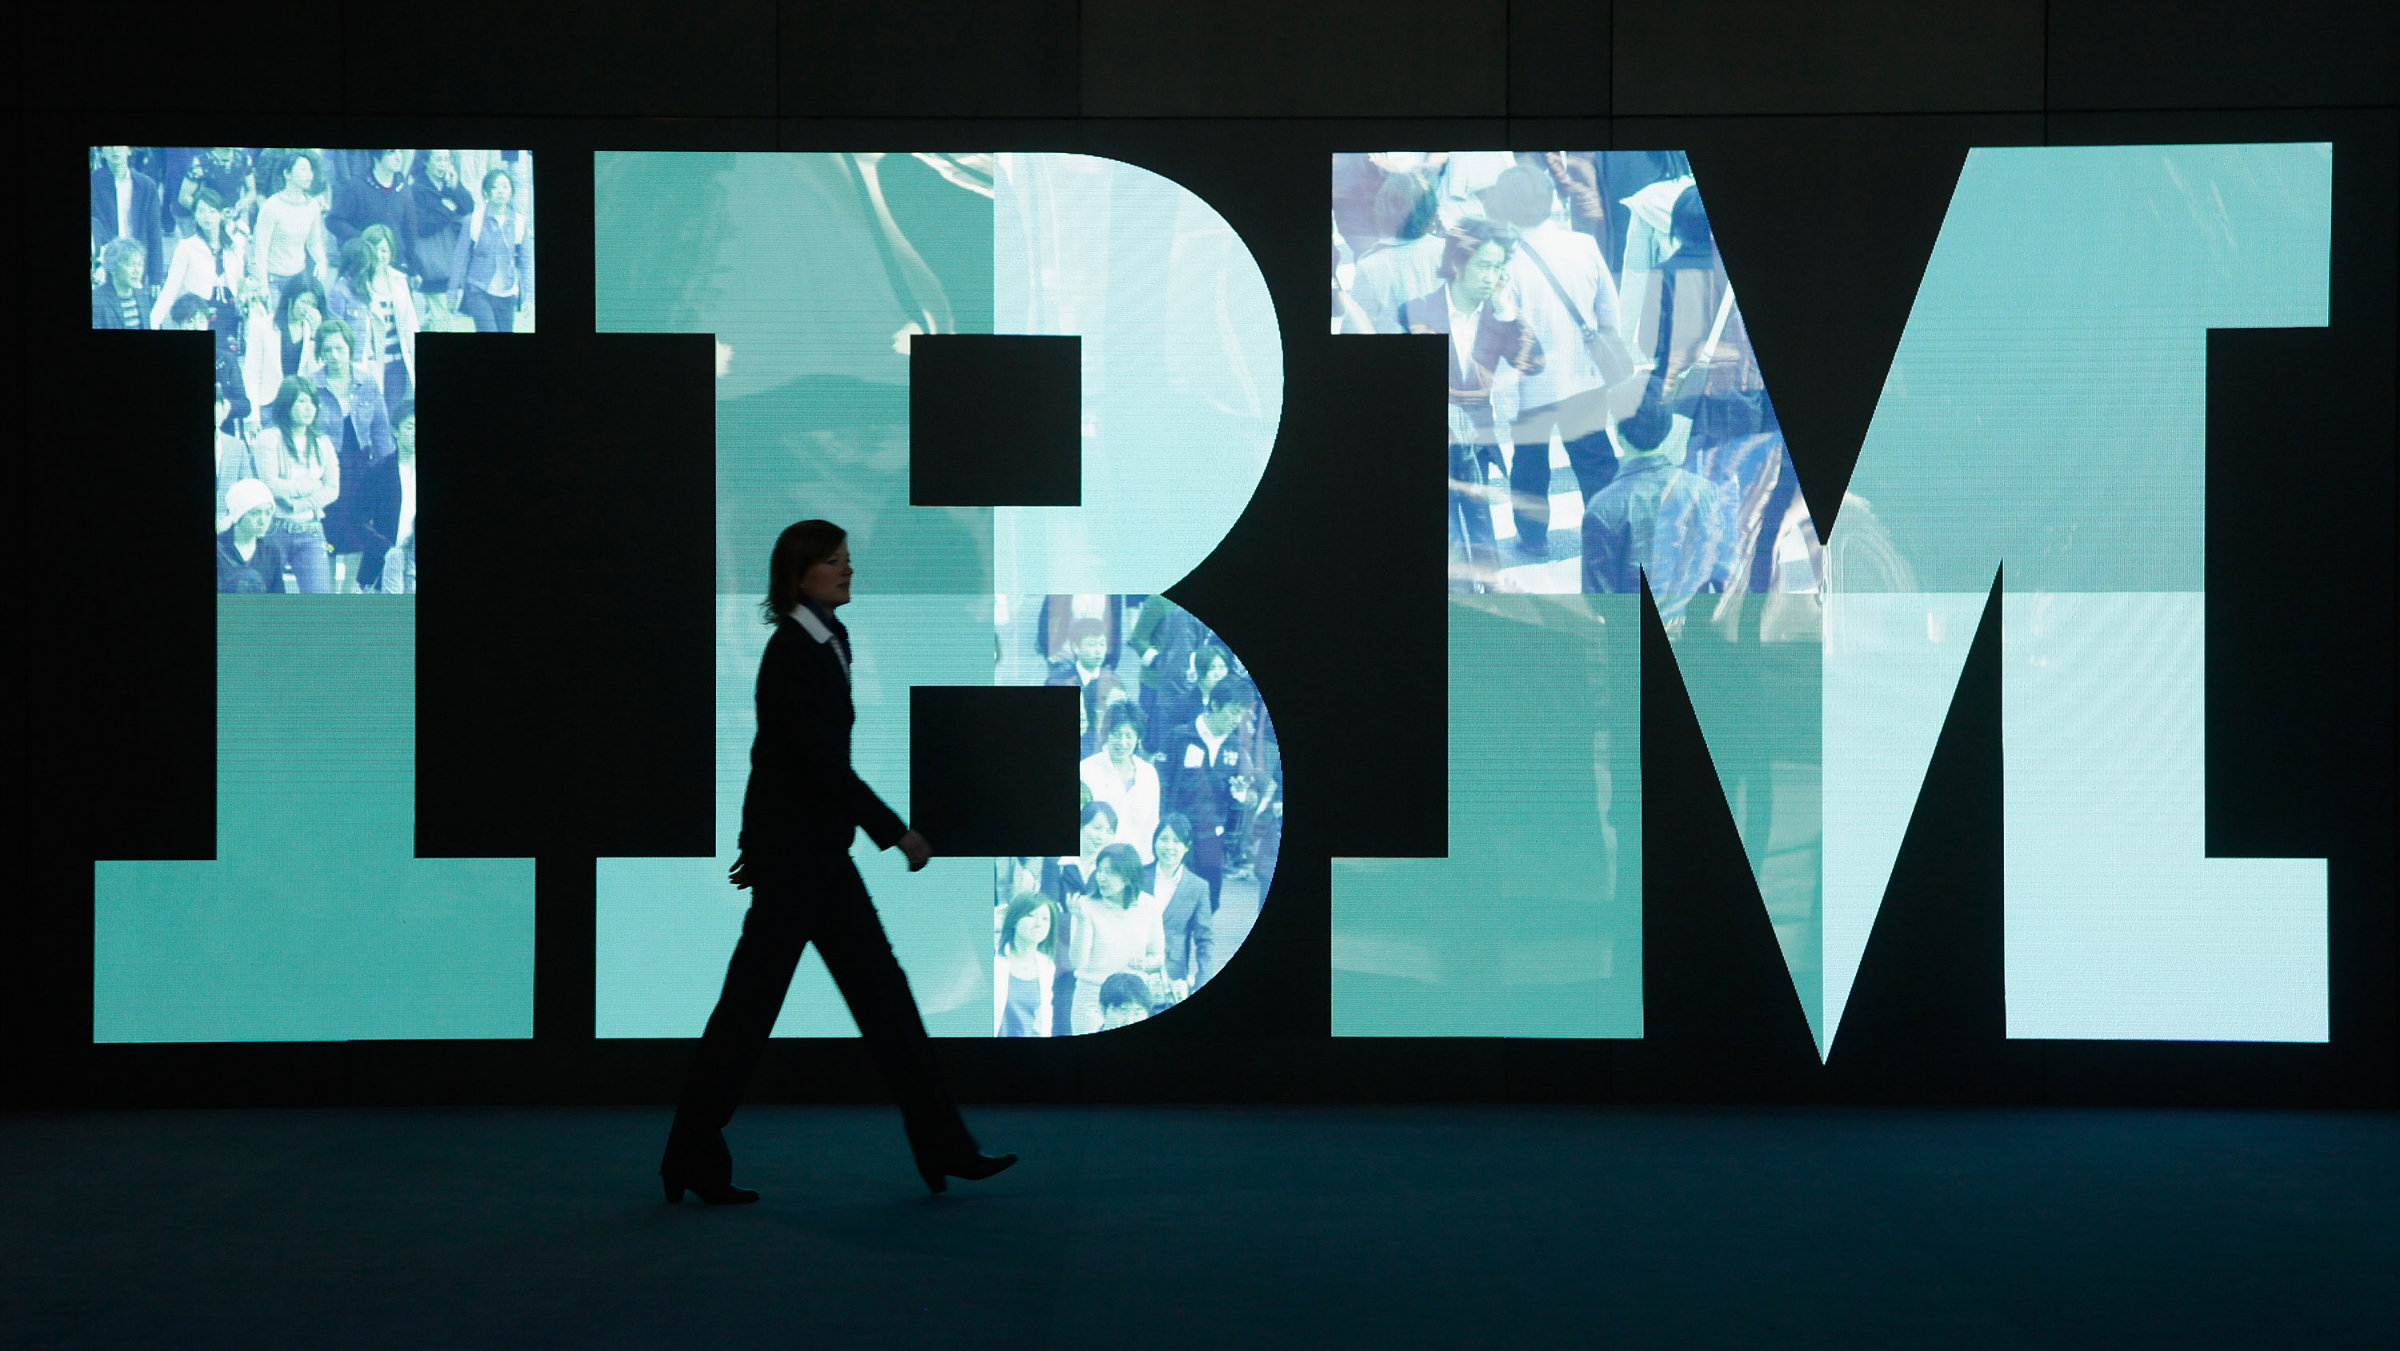 When IBM hired Lou Gerstner as CEO in 1993, he stopped the board from breaking the company up into a number of smaller autonomous entities.